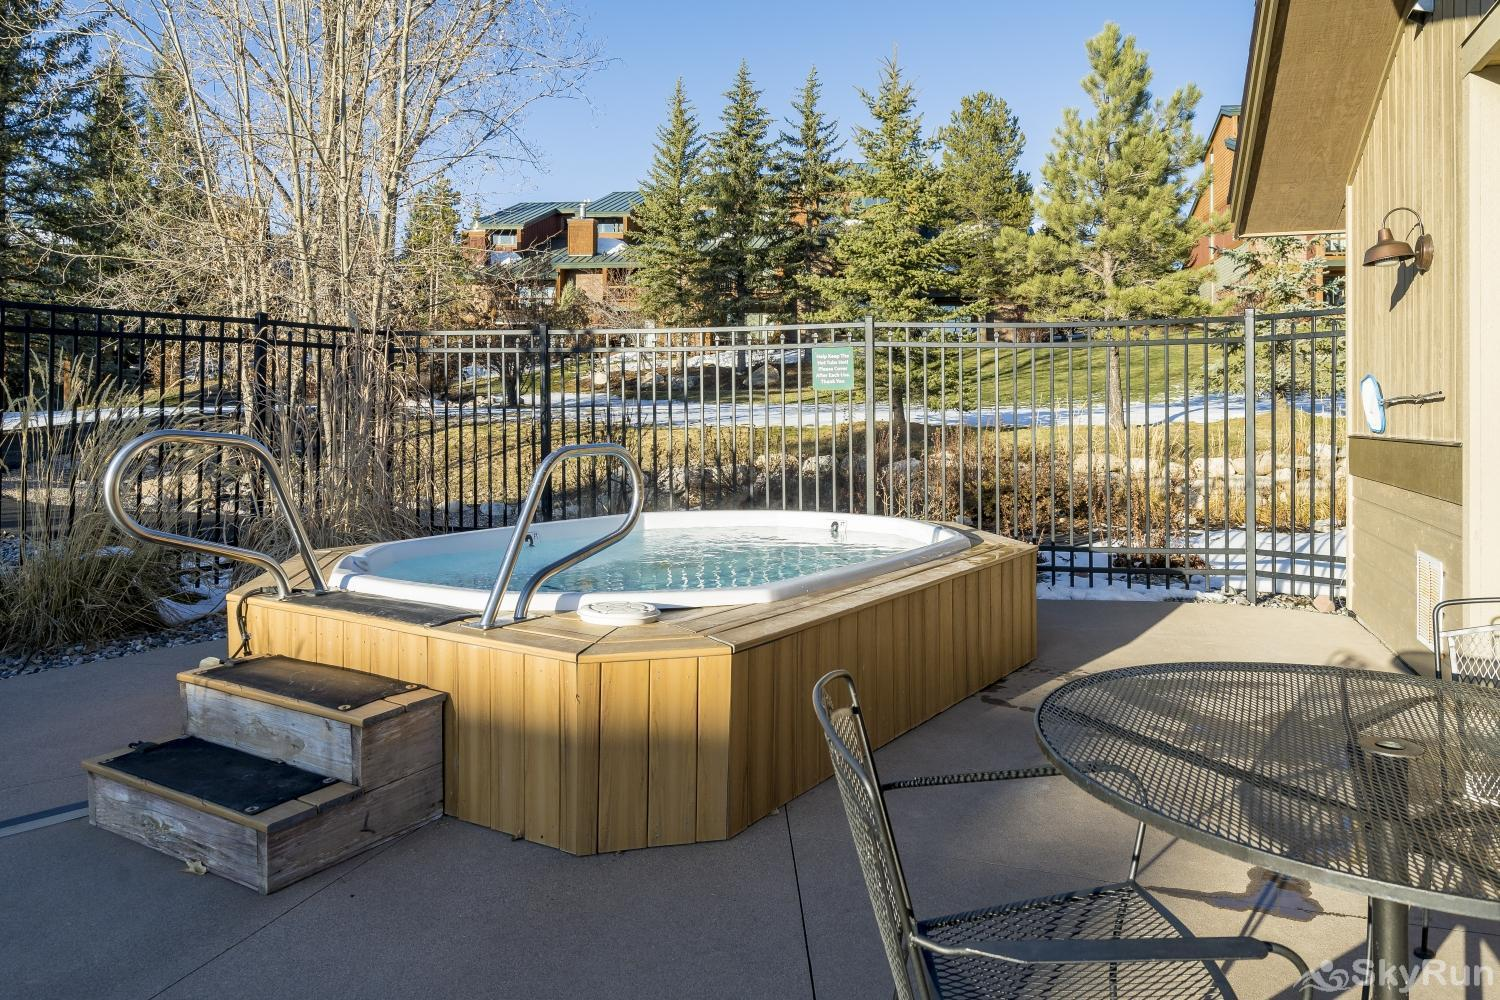 Moraine 27 Shared outdoor hot tub is a great place to soak after a day of skiing.